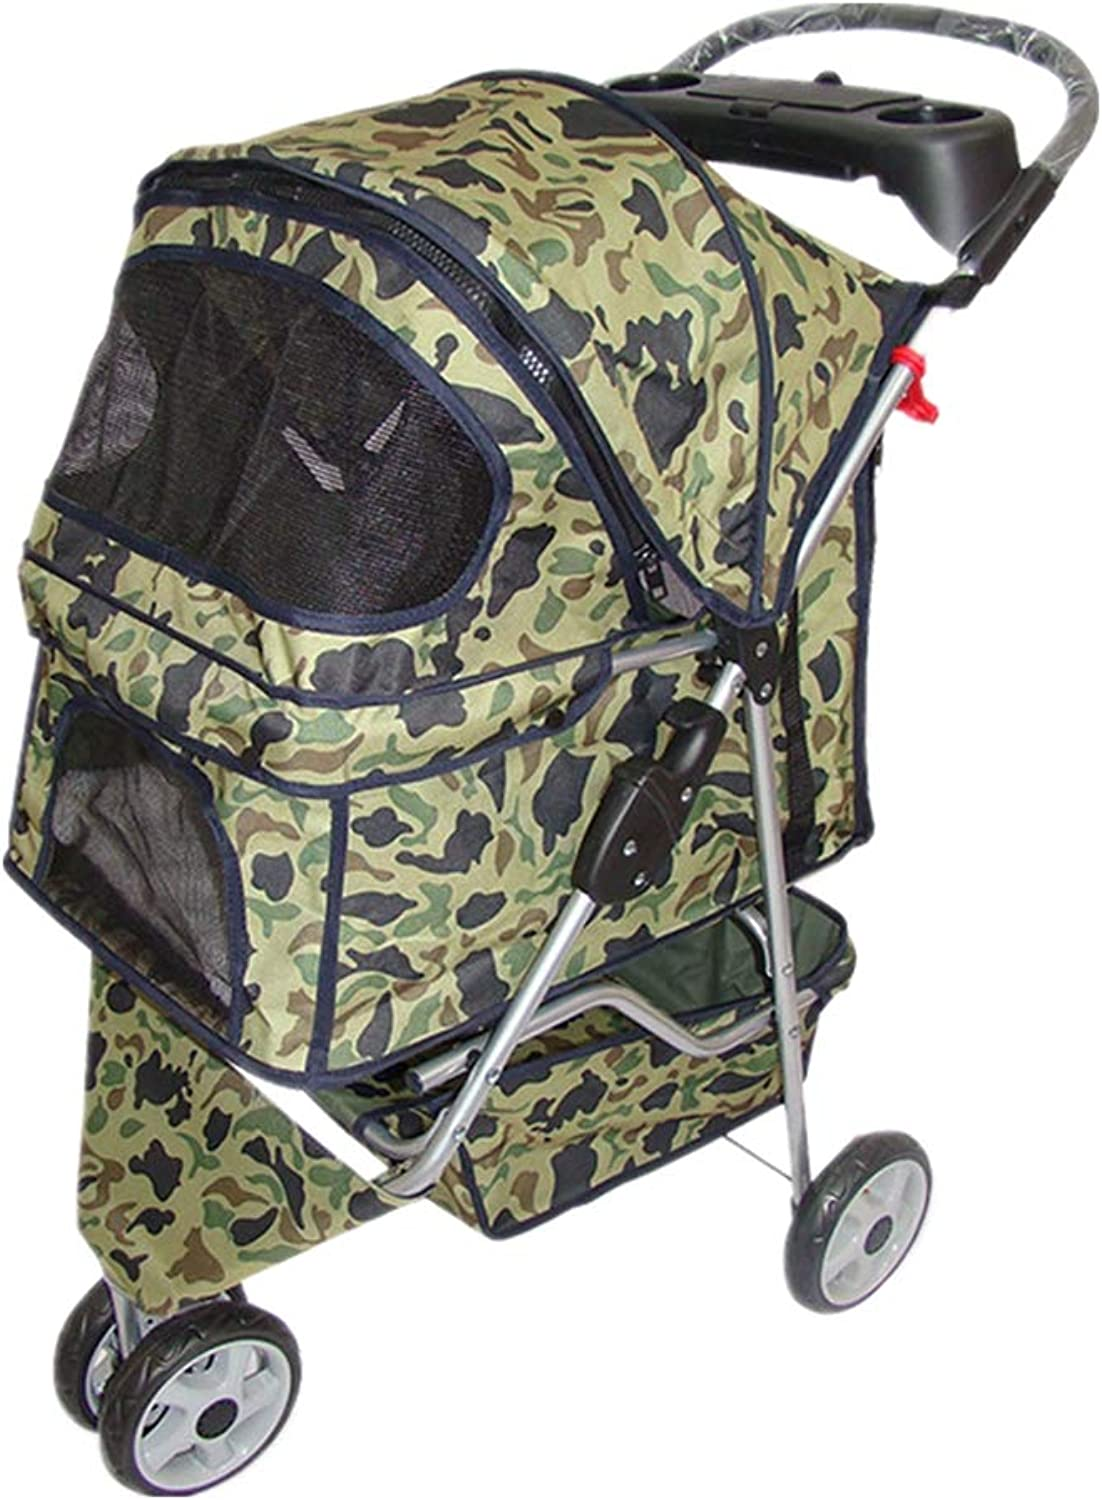 Pet Travel Stroller Breathable Cat Dog Pushchair Trolley Puppy Jogger Carrier Three Wheels Can Accommodate 20kg Pets